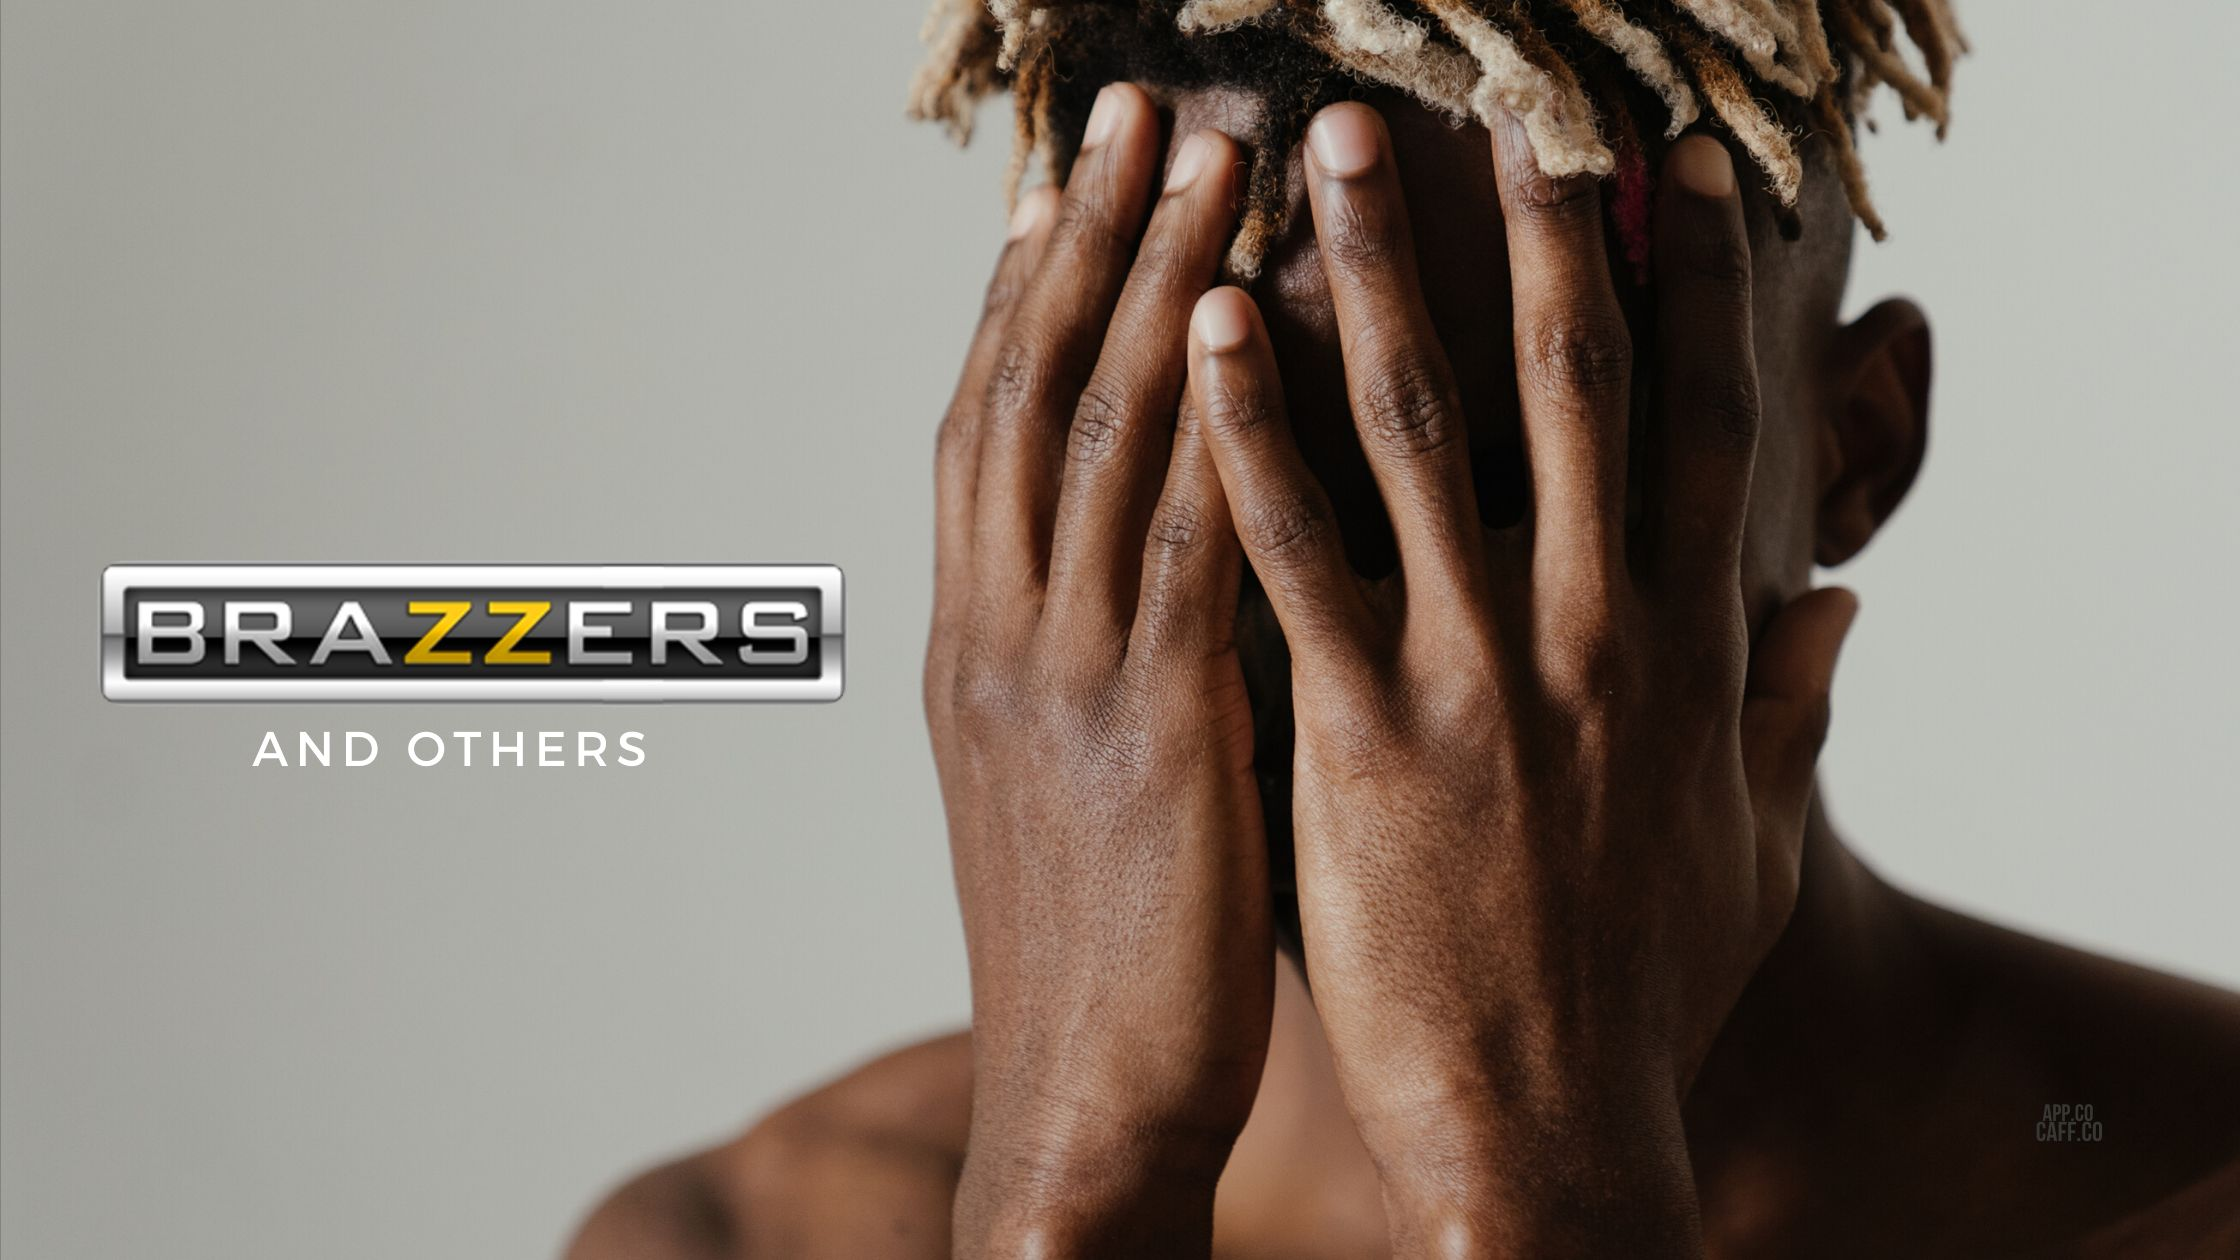 Brazzers and Others